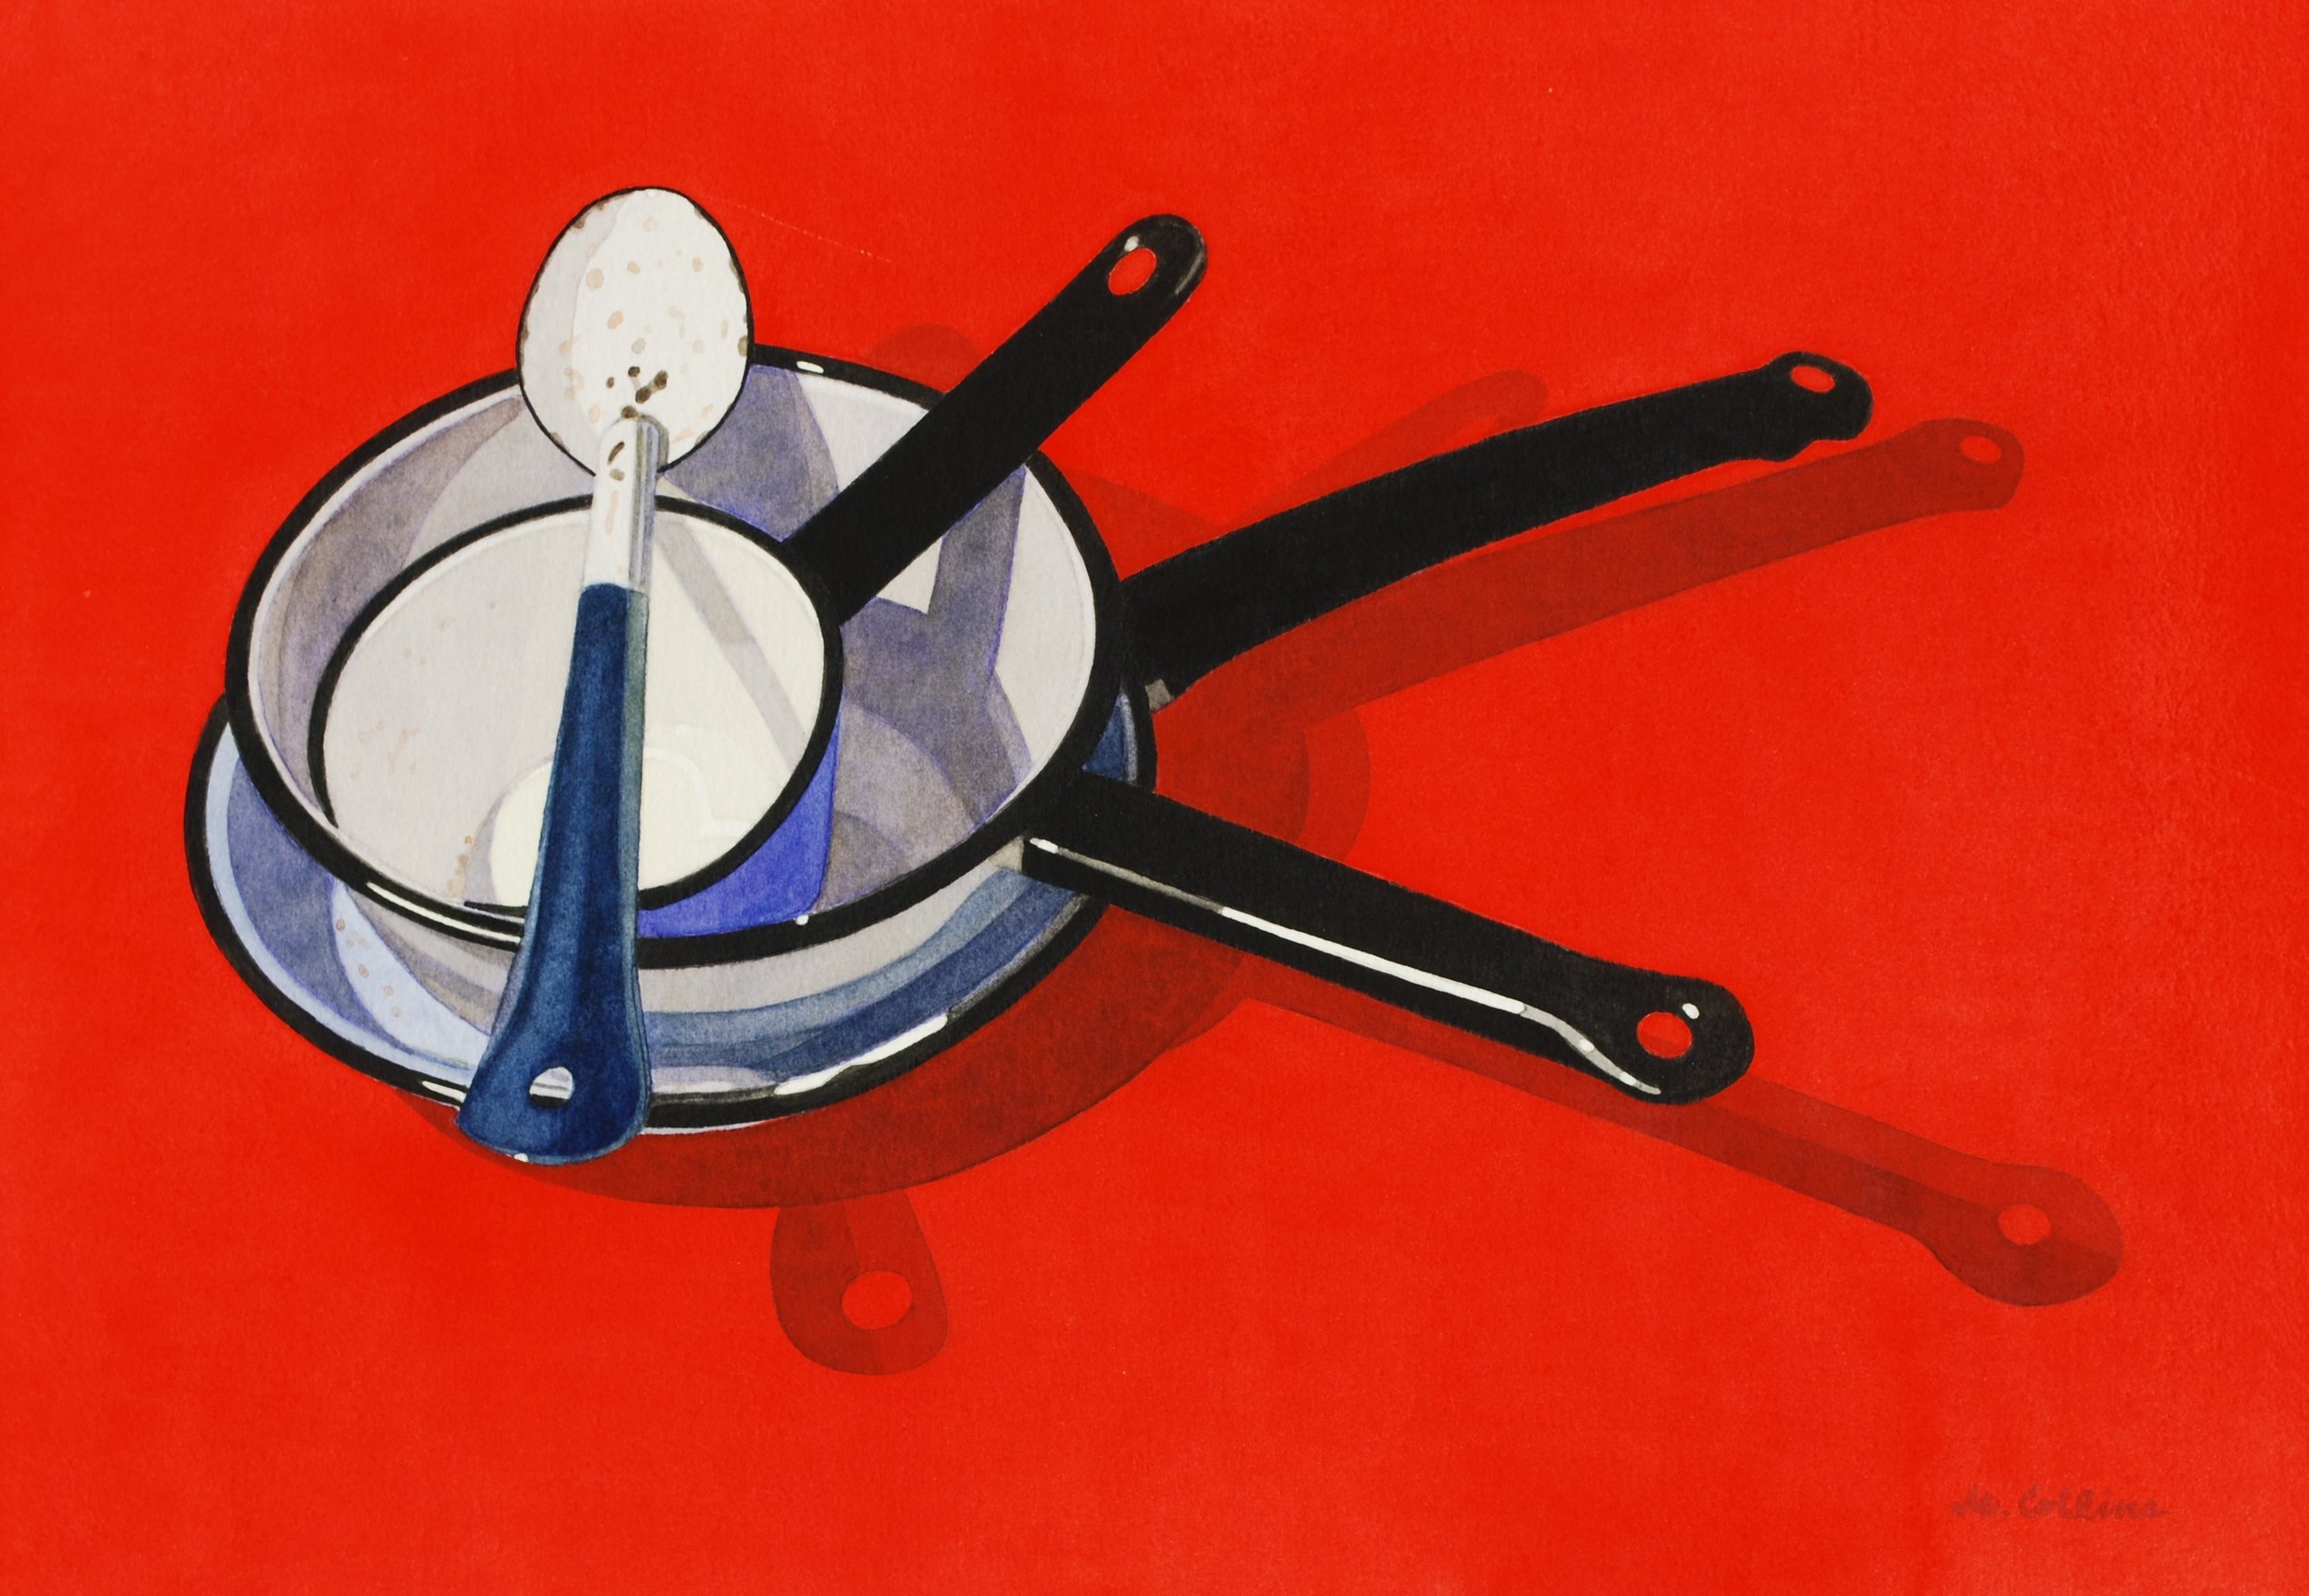 Marjorie Collins, Pots and Pan on Red, Watercolour, 57 x 73 x 2 cm,  http://marjoriecollins.com